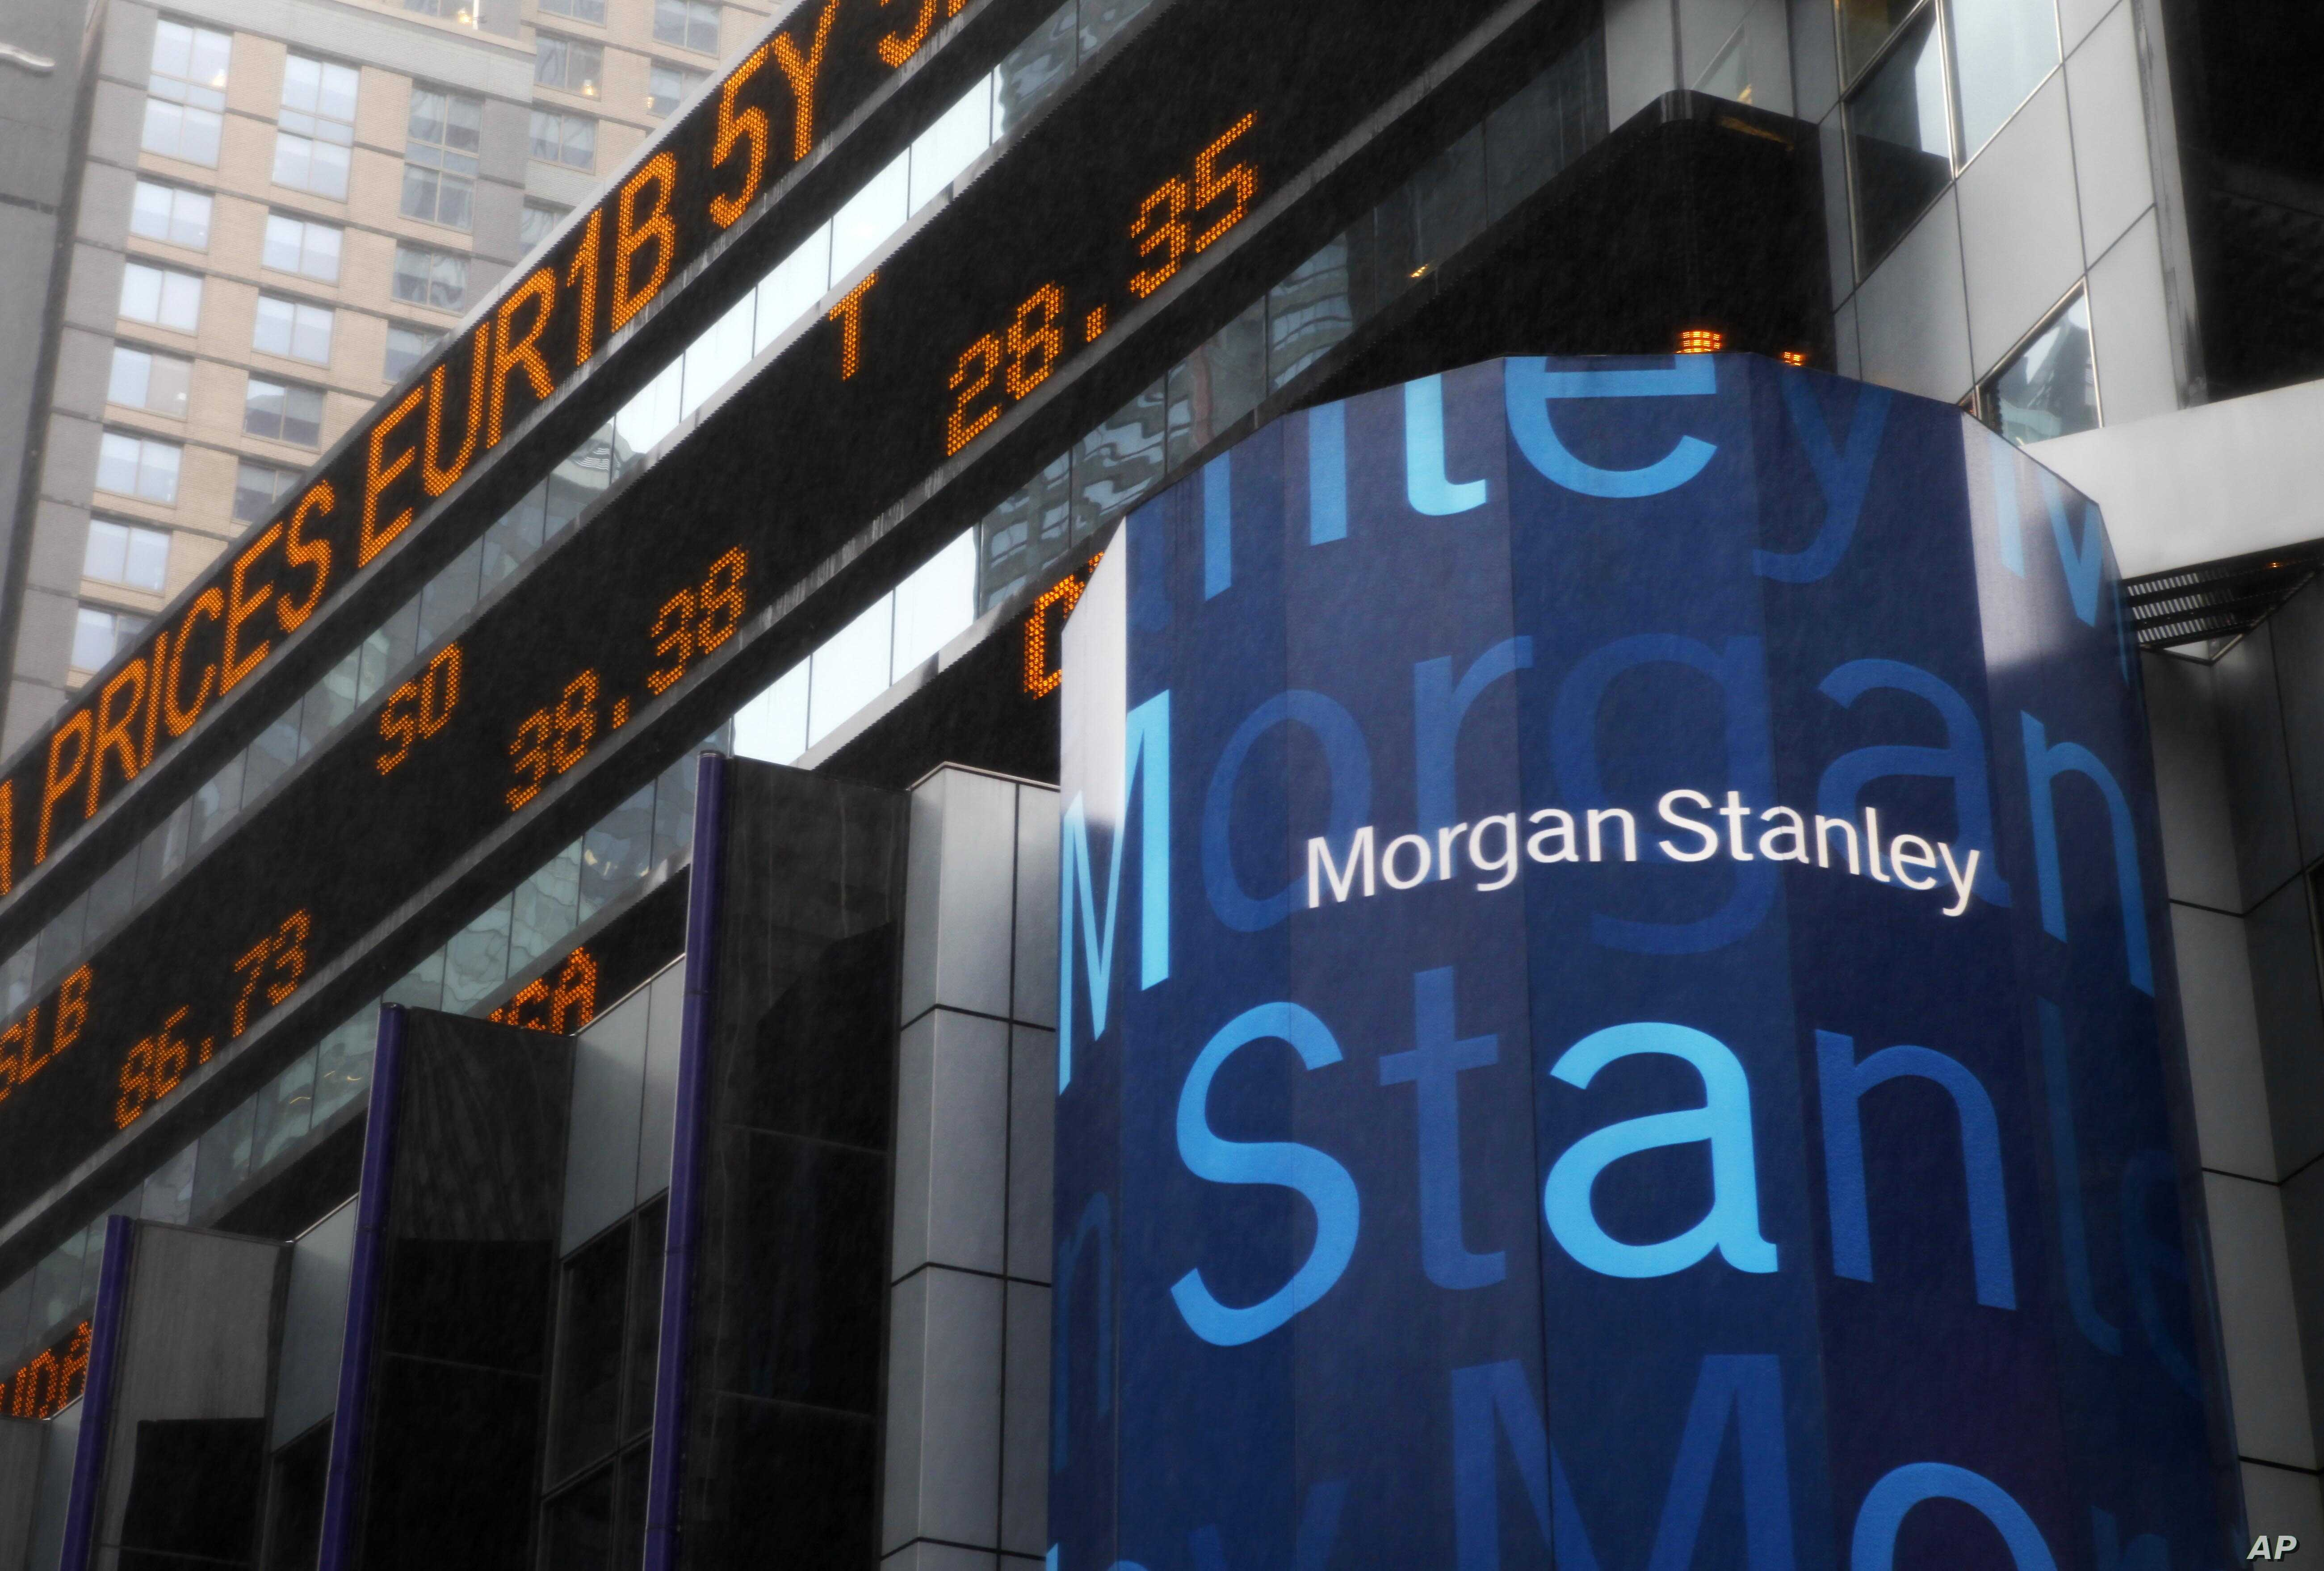 Morgan Stanley Looks to Savings Accounts to Boost Profits